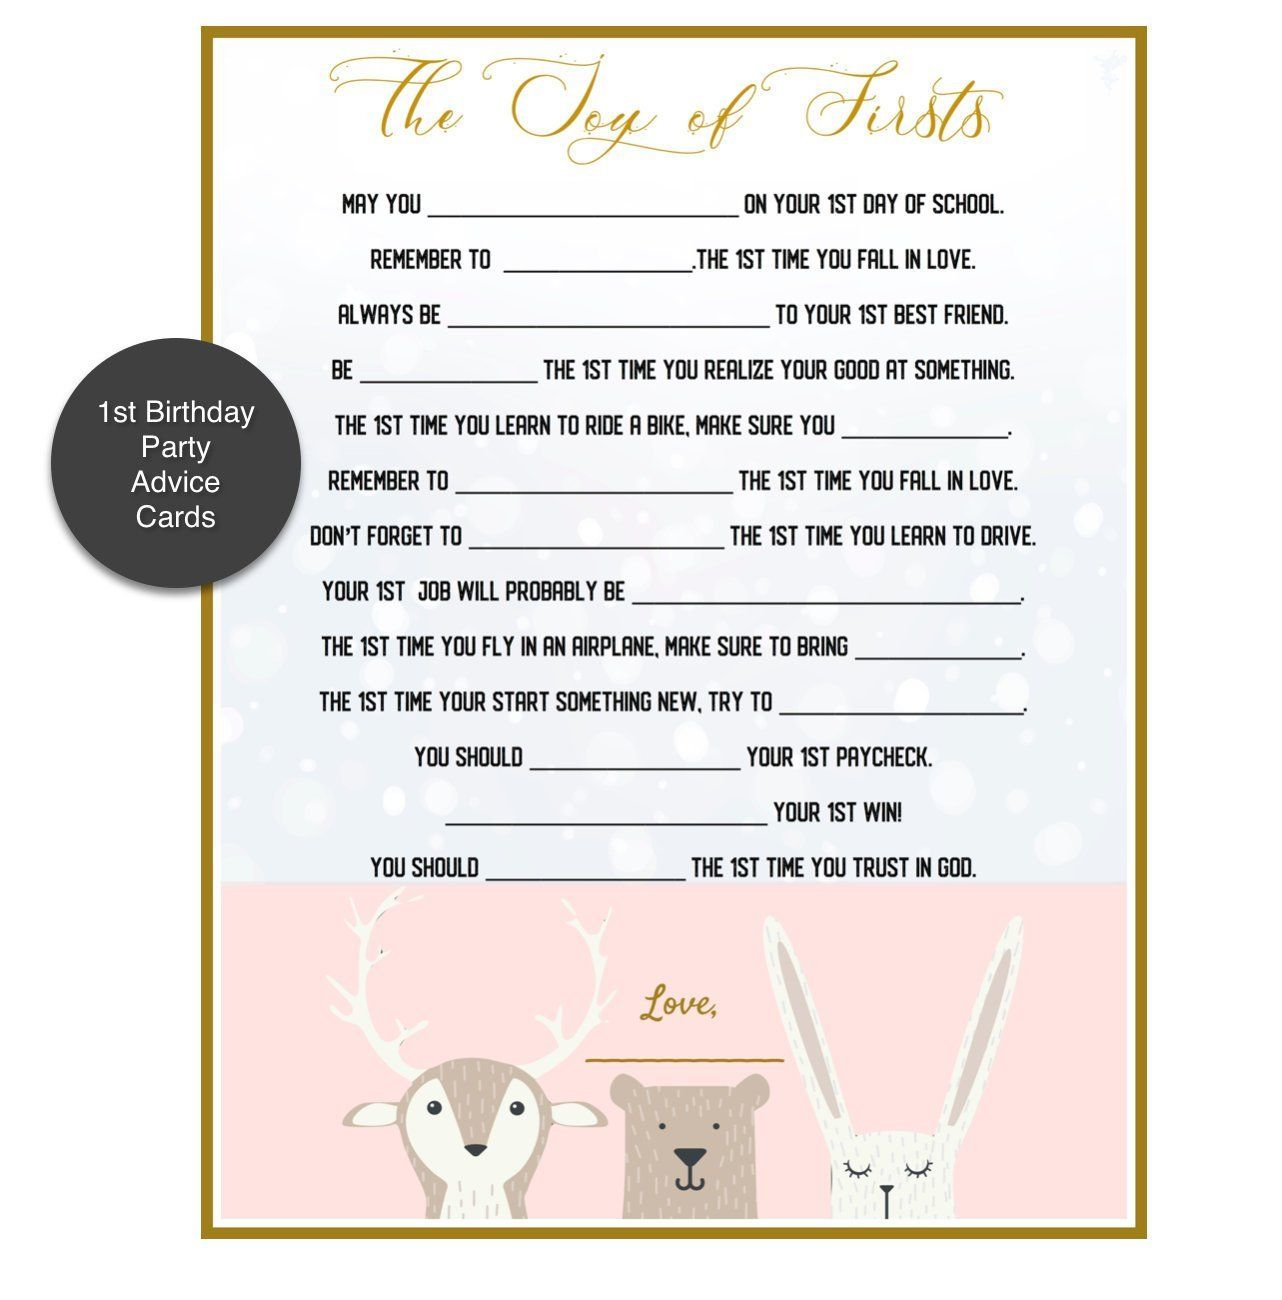 1st Birthday Party Game Advice From Family Friends Etsy In 2021 1st Birthday Party Games Birthday Games For Adults 1st Birthday Games